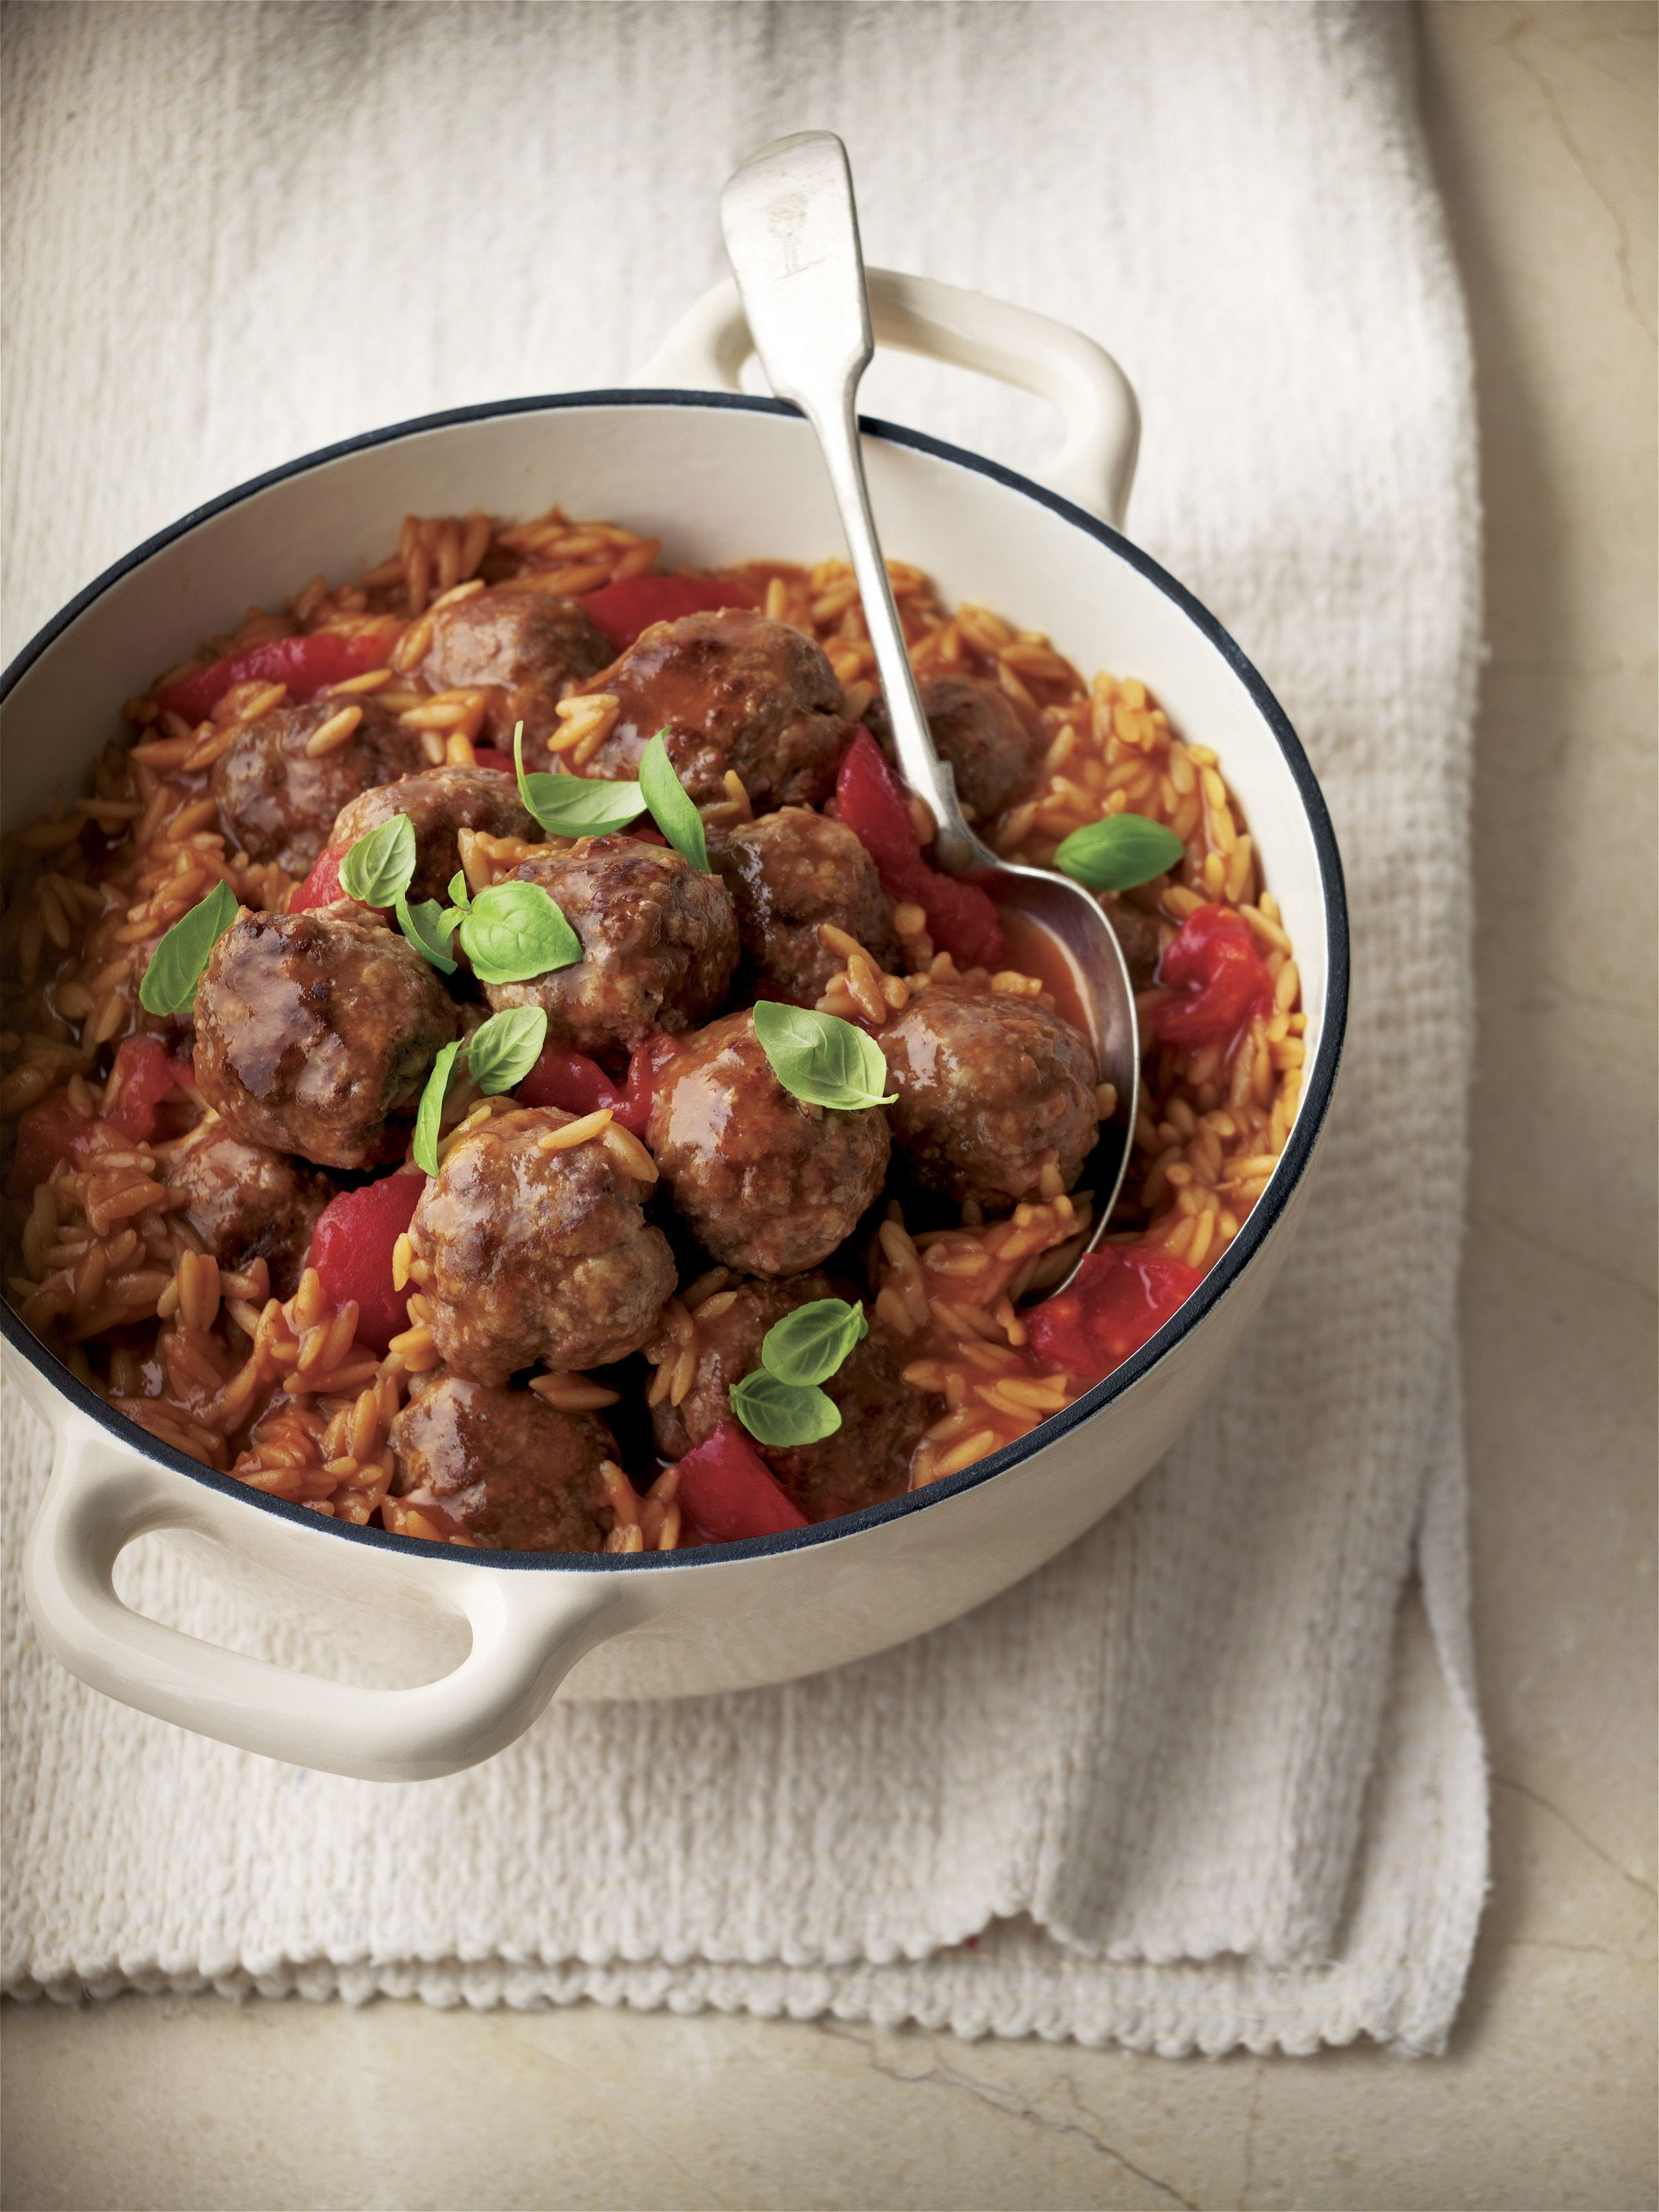 Wonderful Try Our Meatballs And Tomato Risoni Http://www.campbellskitchen.com.